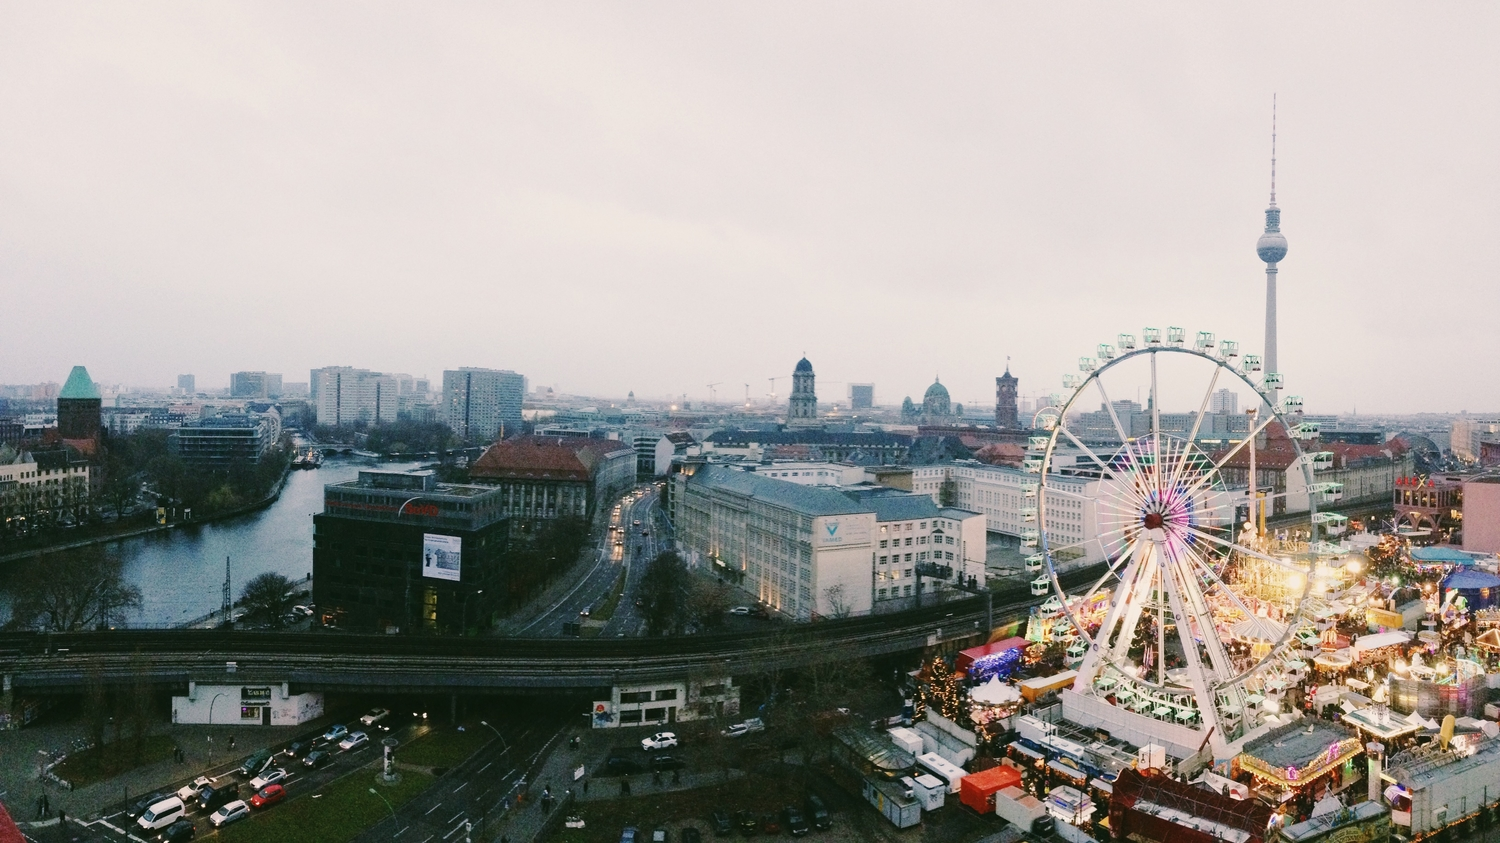 The view from our AirBnB overlooking Alexanderplatz